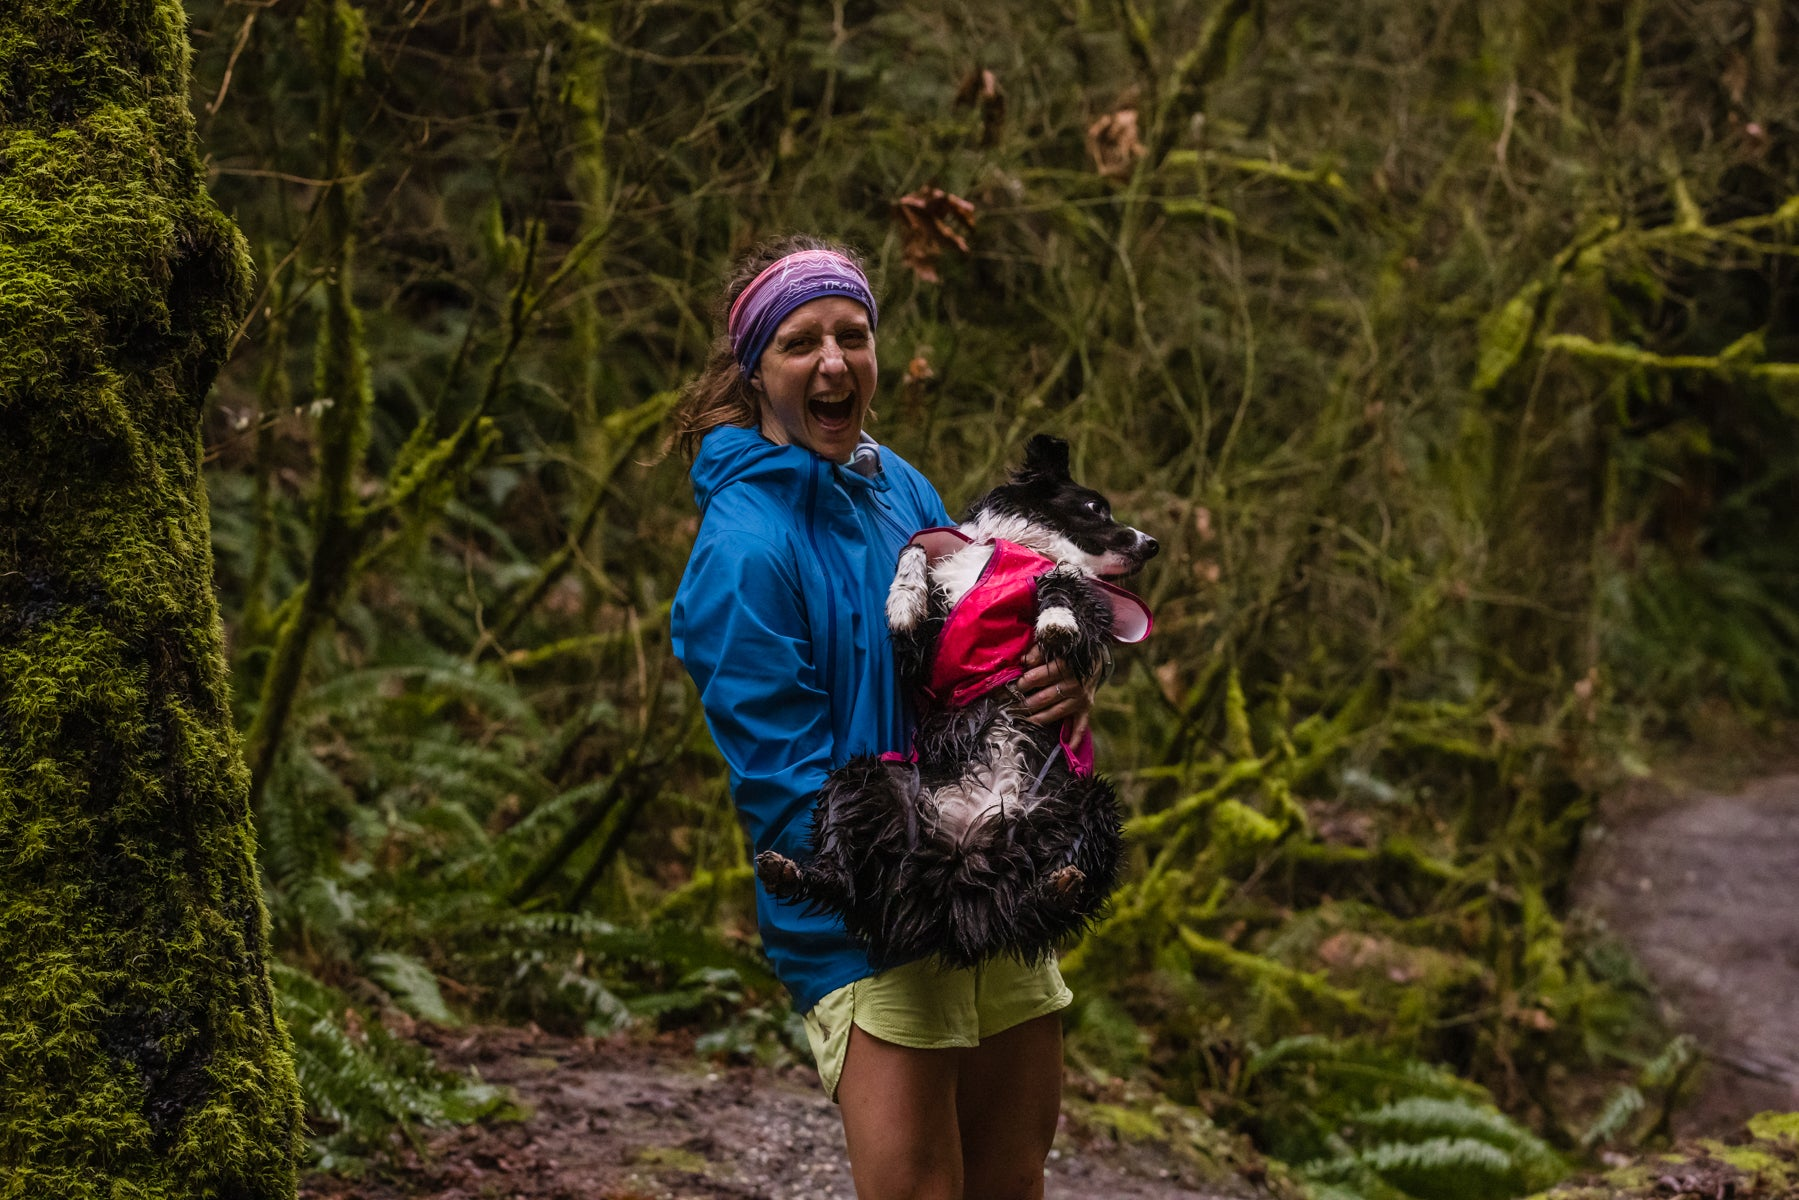 Krissy holds PD up to show how wet and muddy she gets on the trail